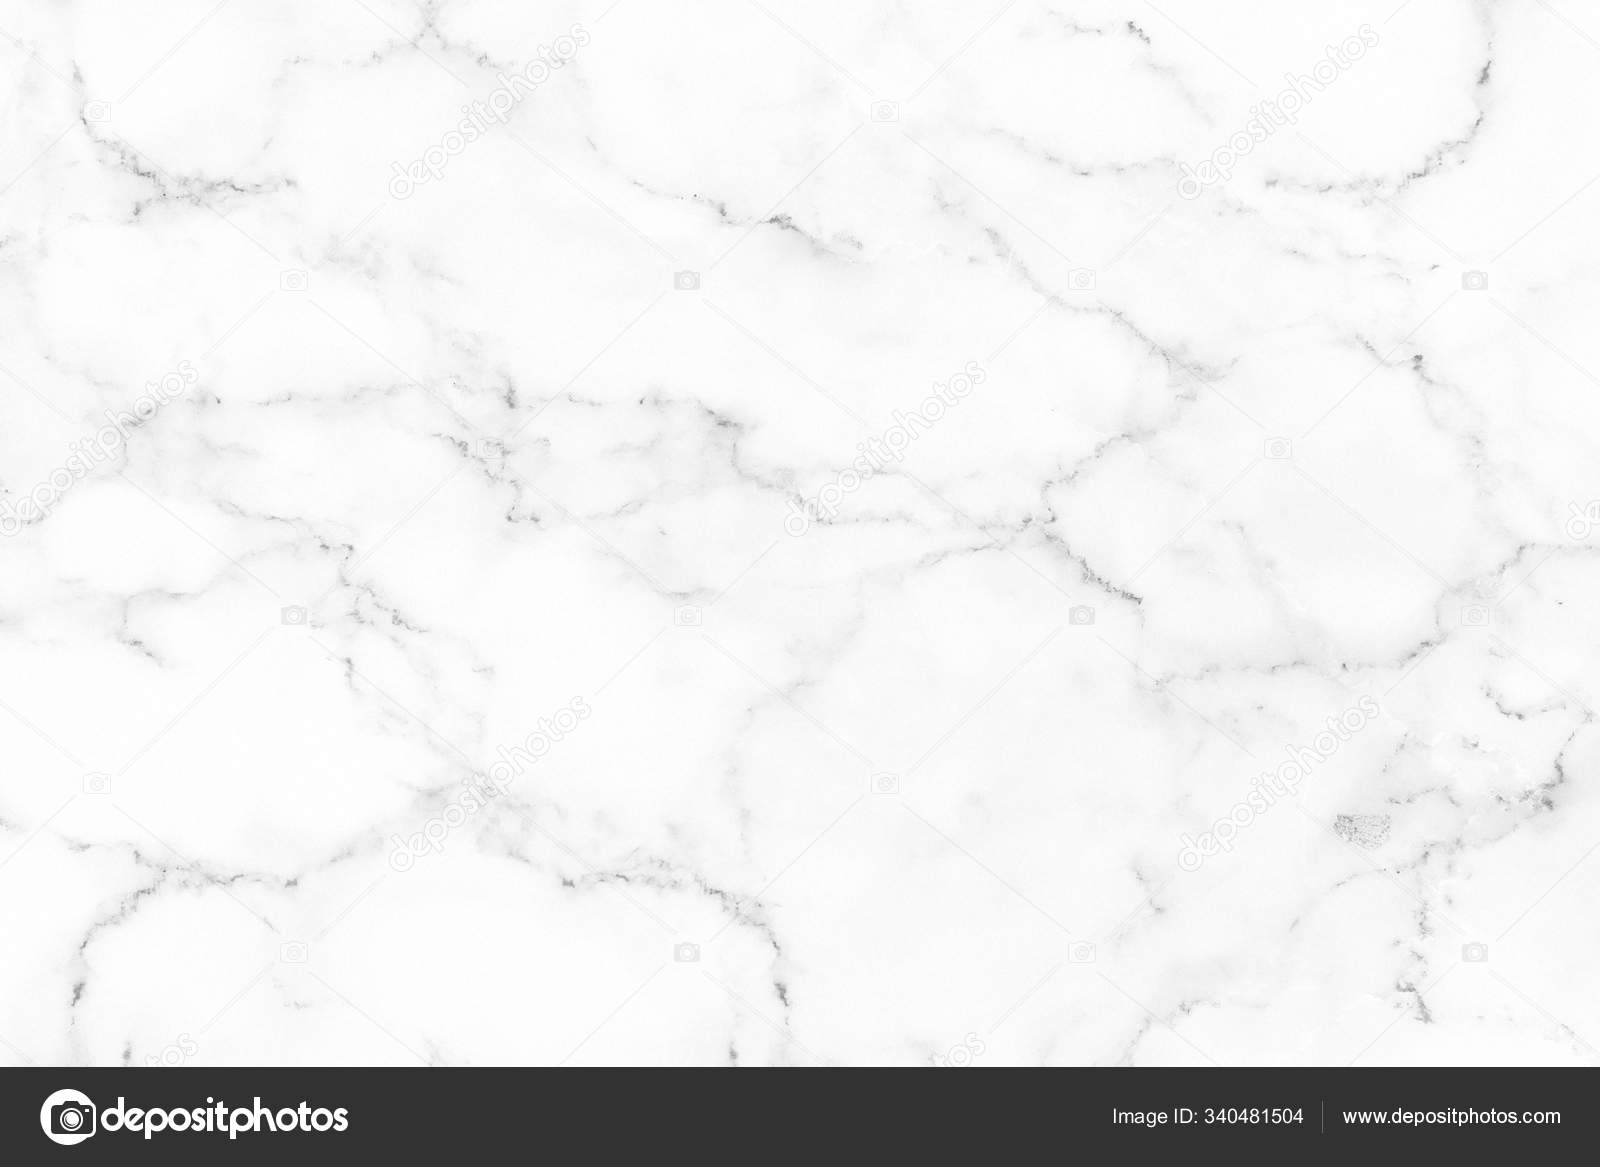 Natural White Marble Texture For Skin Tile Wallpaper Luxurious Background For Design Art Work Stone Ceramic Art Wall Interiors Backdrop Design Marble With High Resolution Stock Photo C Noomubon 340481504